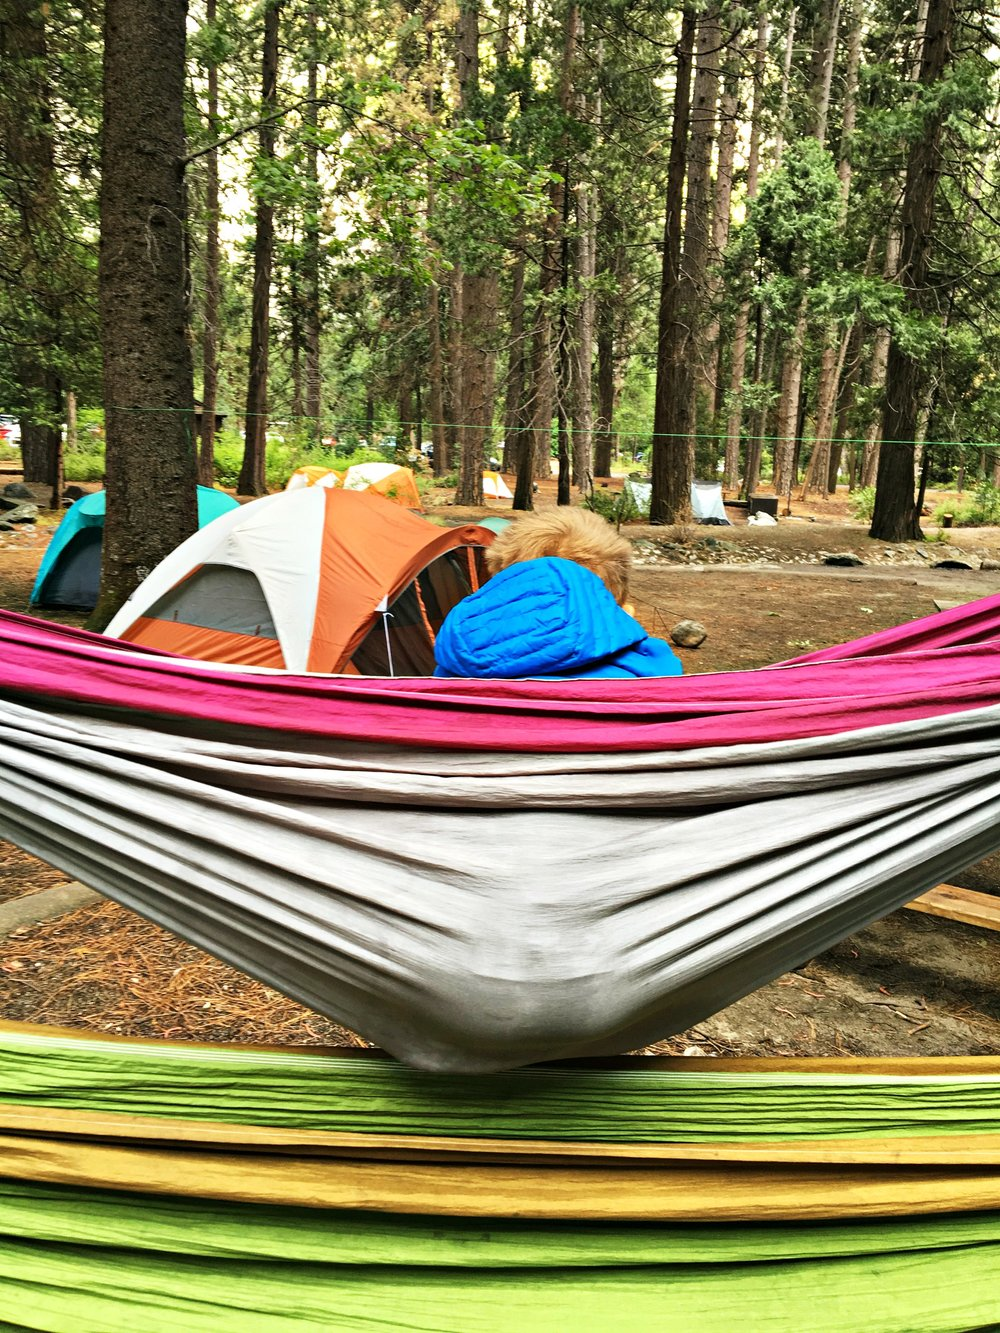 This guide explains the top 10 most important benefits of camping in the great outdoors with your kids.Nature is beautiful, and there's nothing like exploring the wild and seeing what life has to offer outside of traditional modern conveniences.